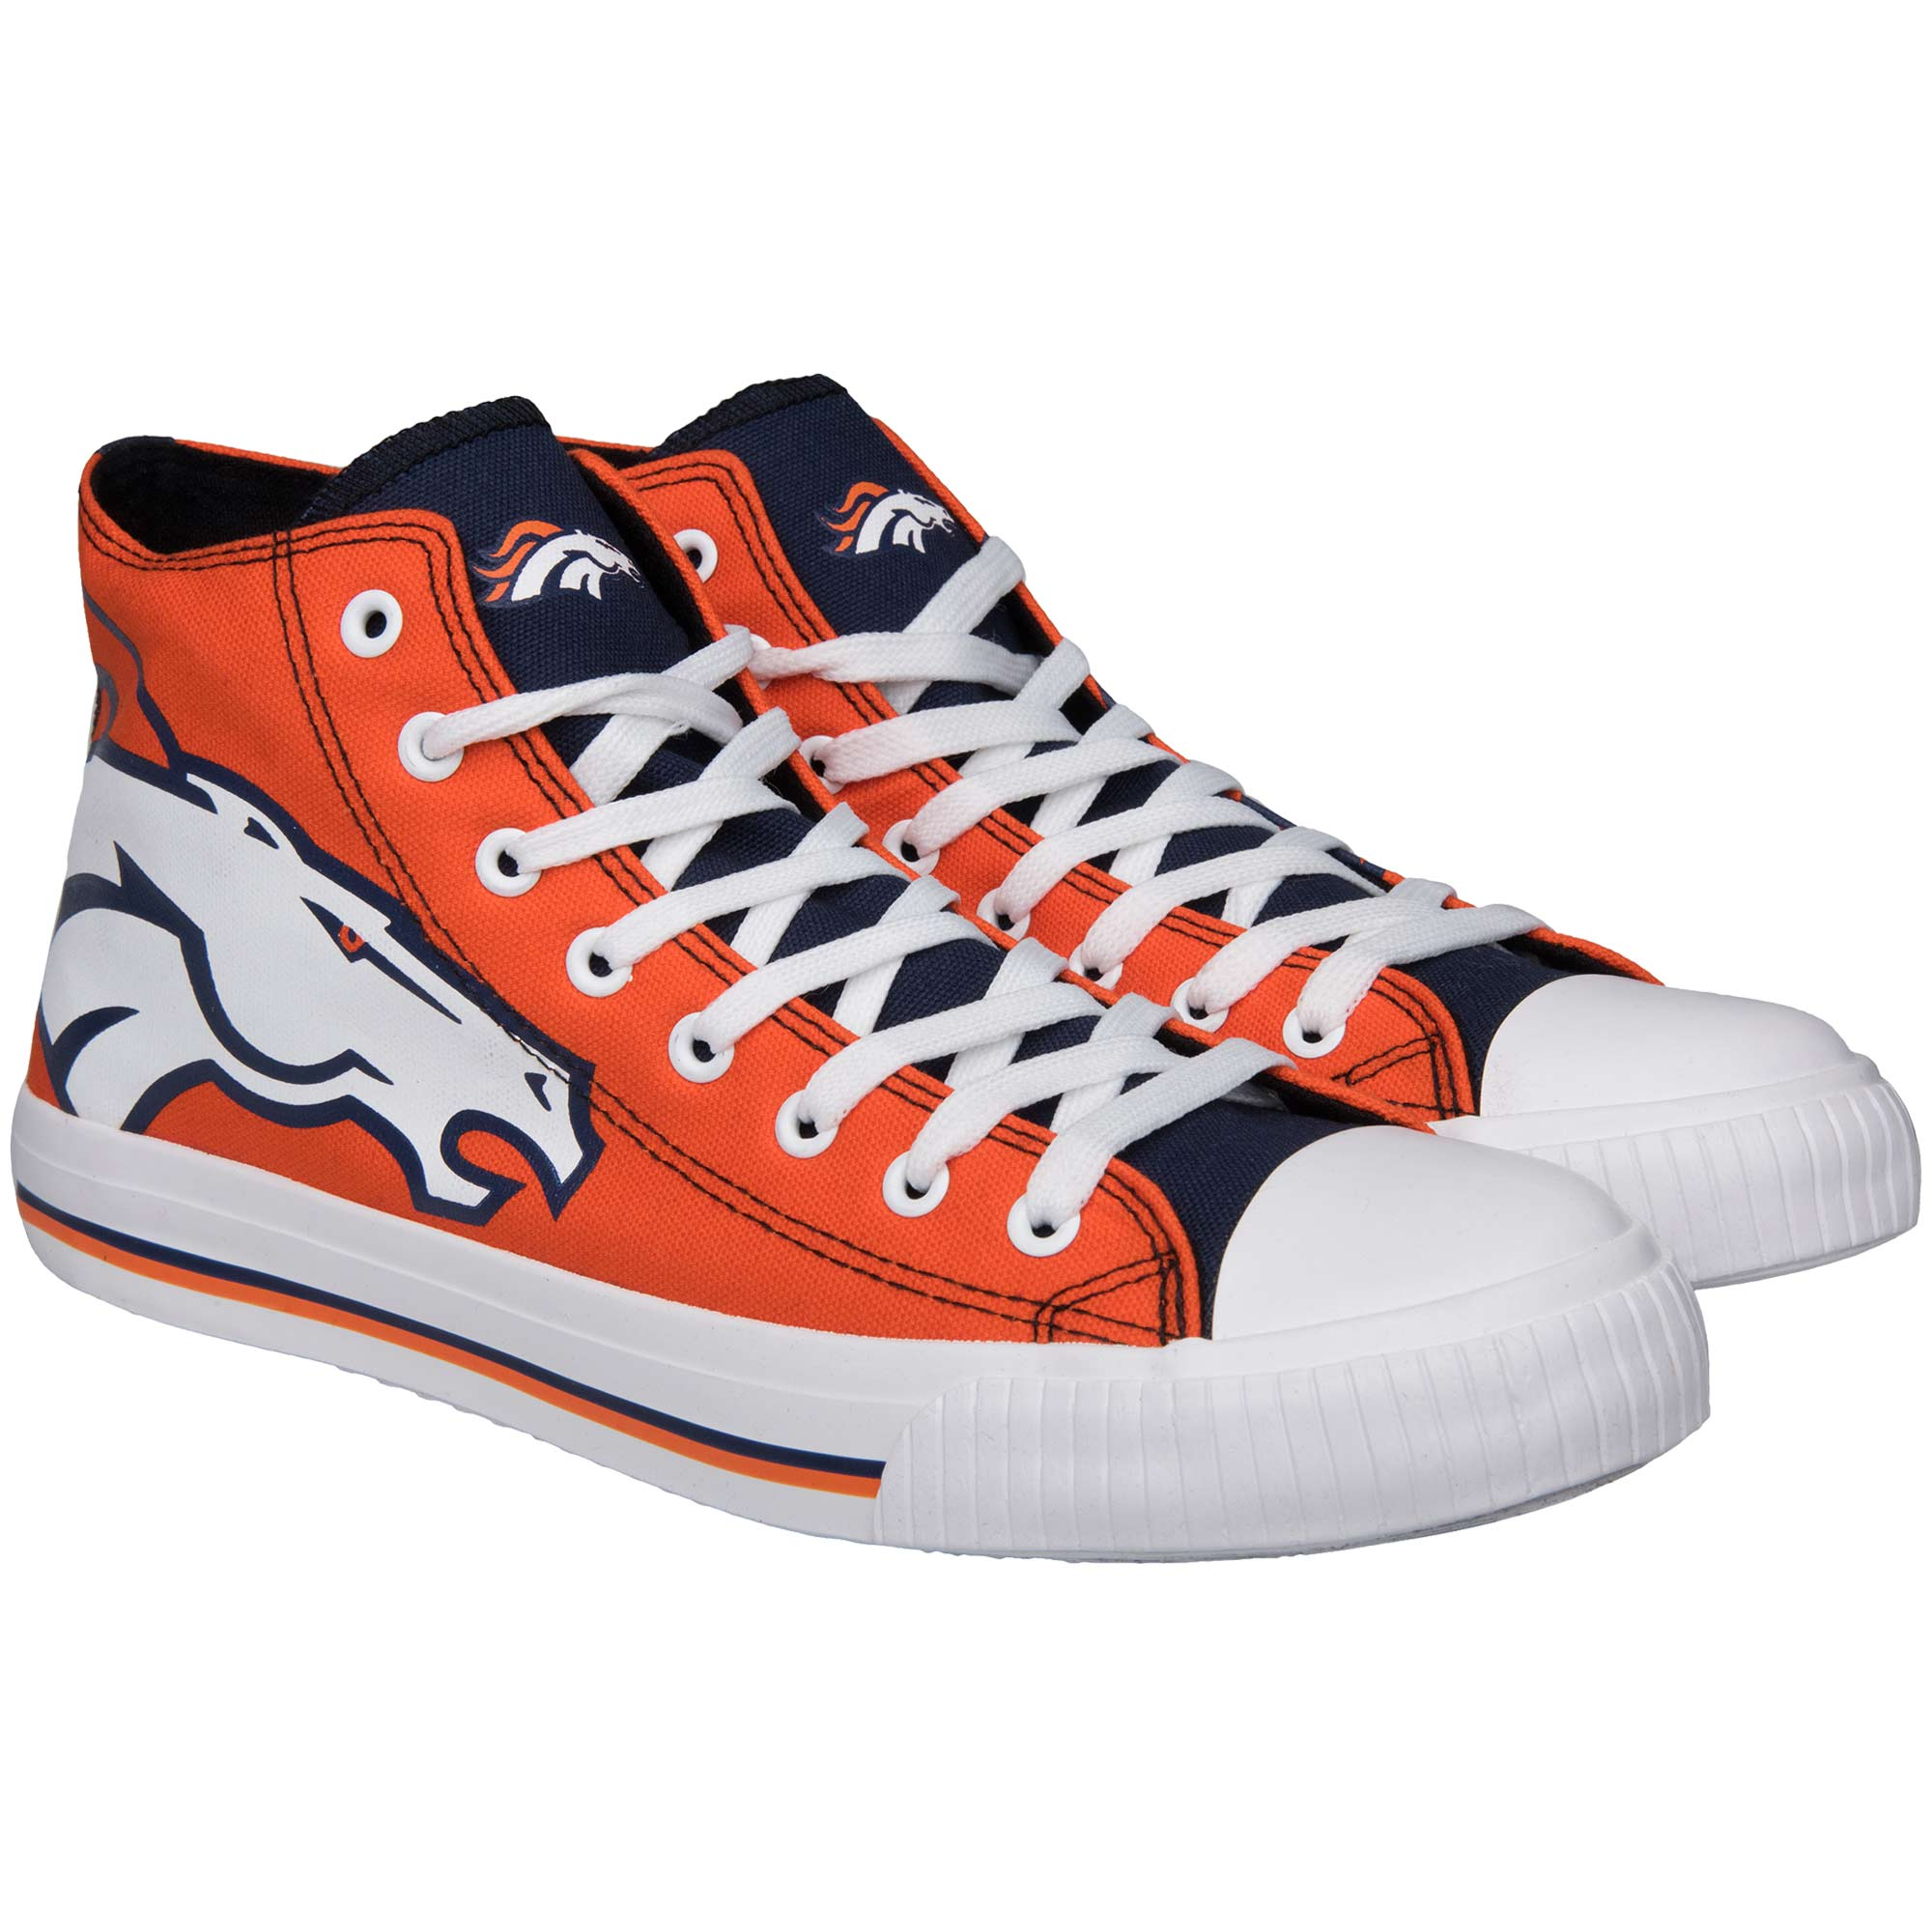 Denver Broncos Big Logo High Top Sneakers